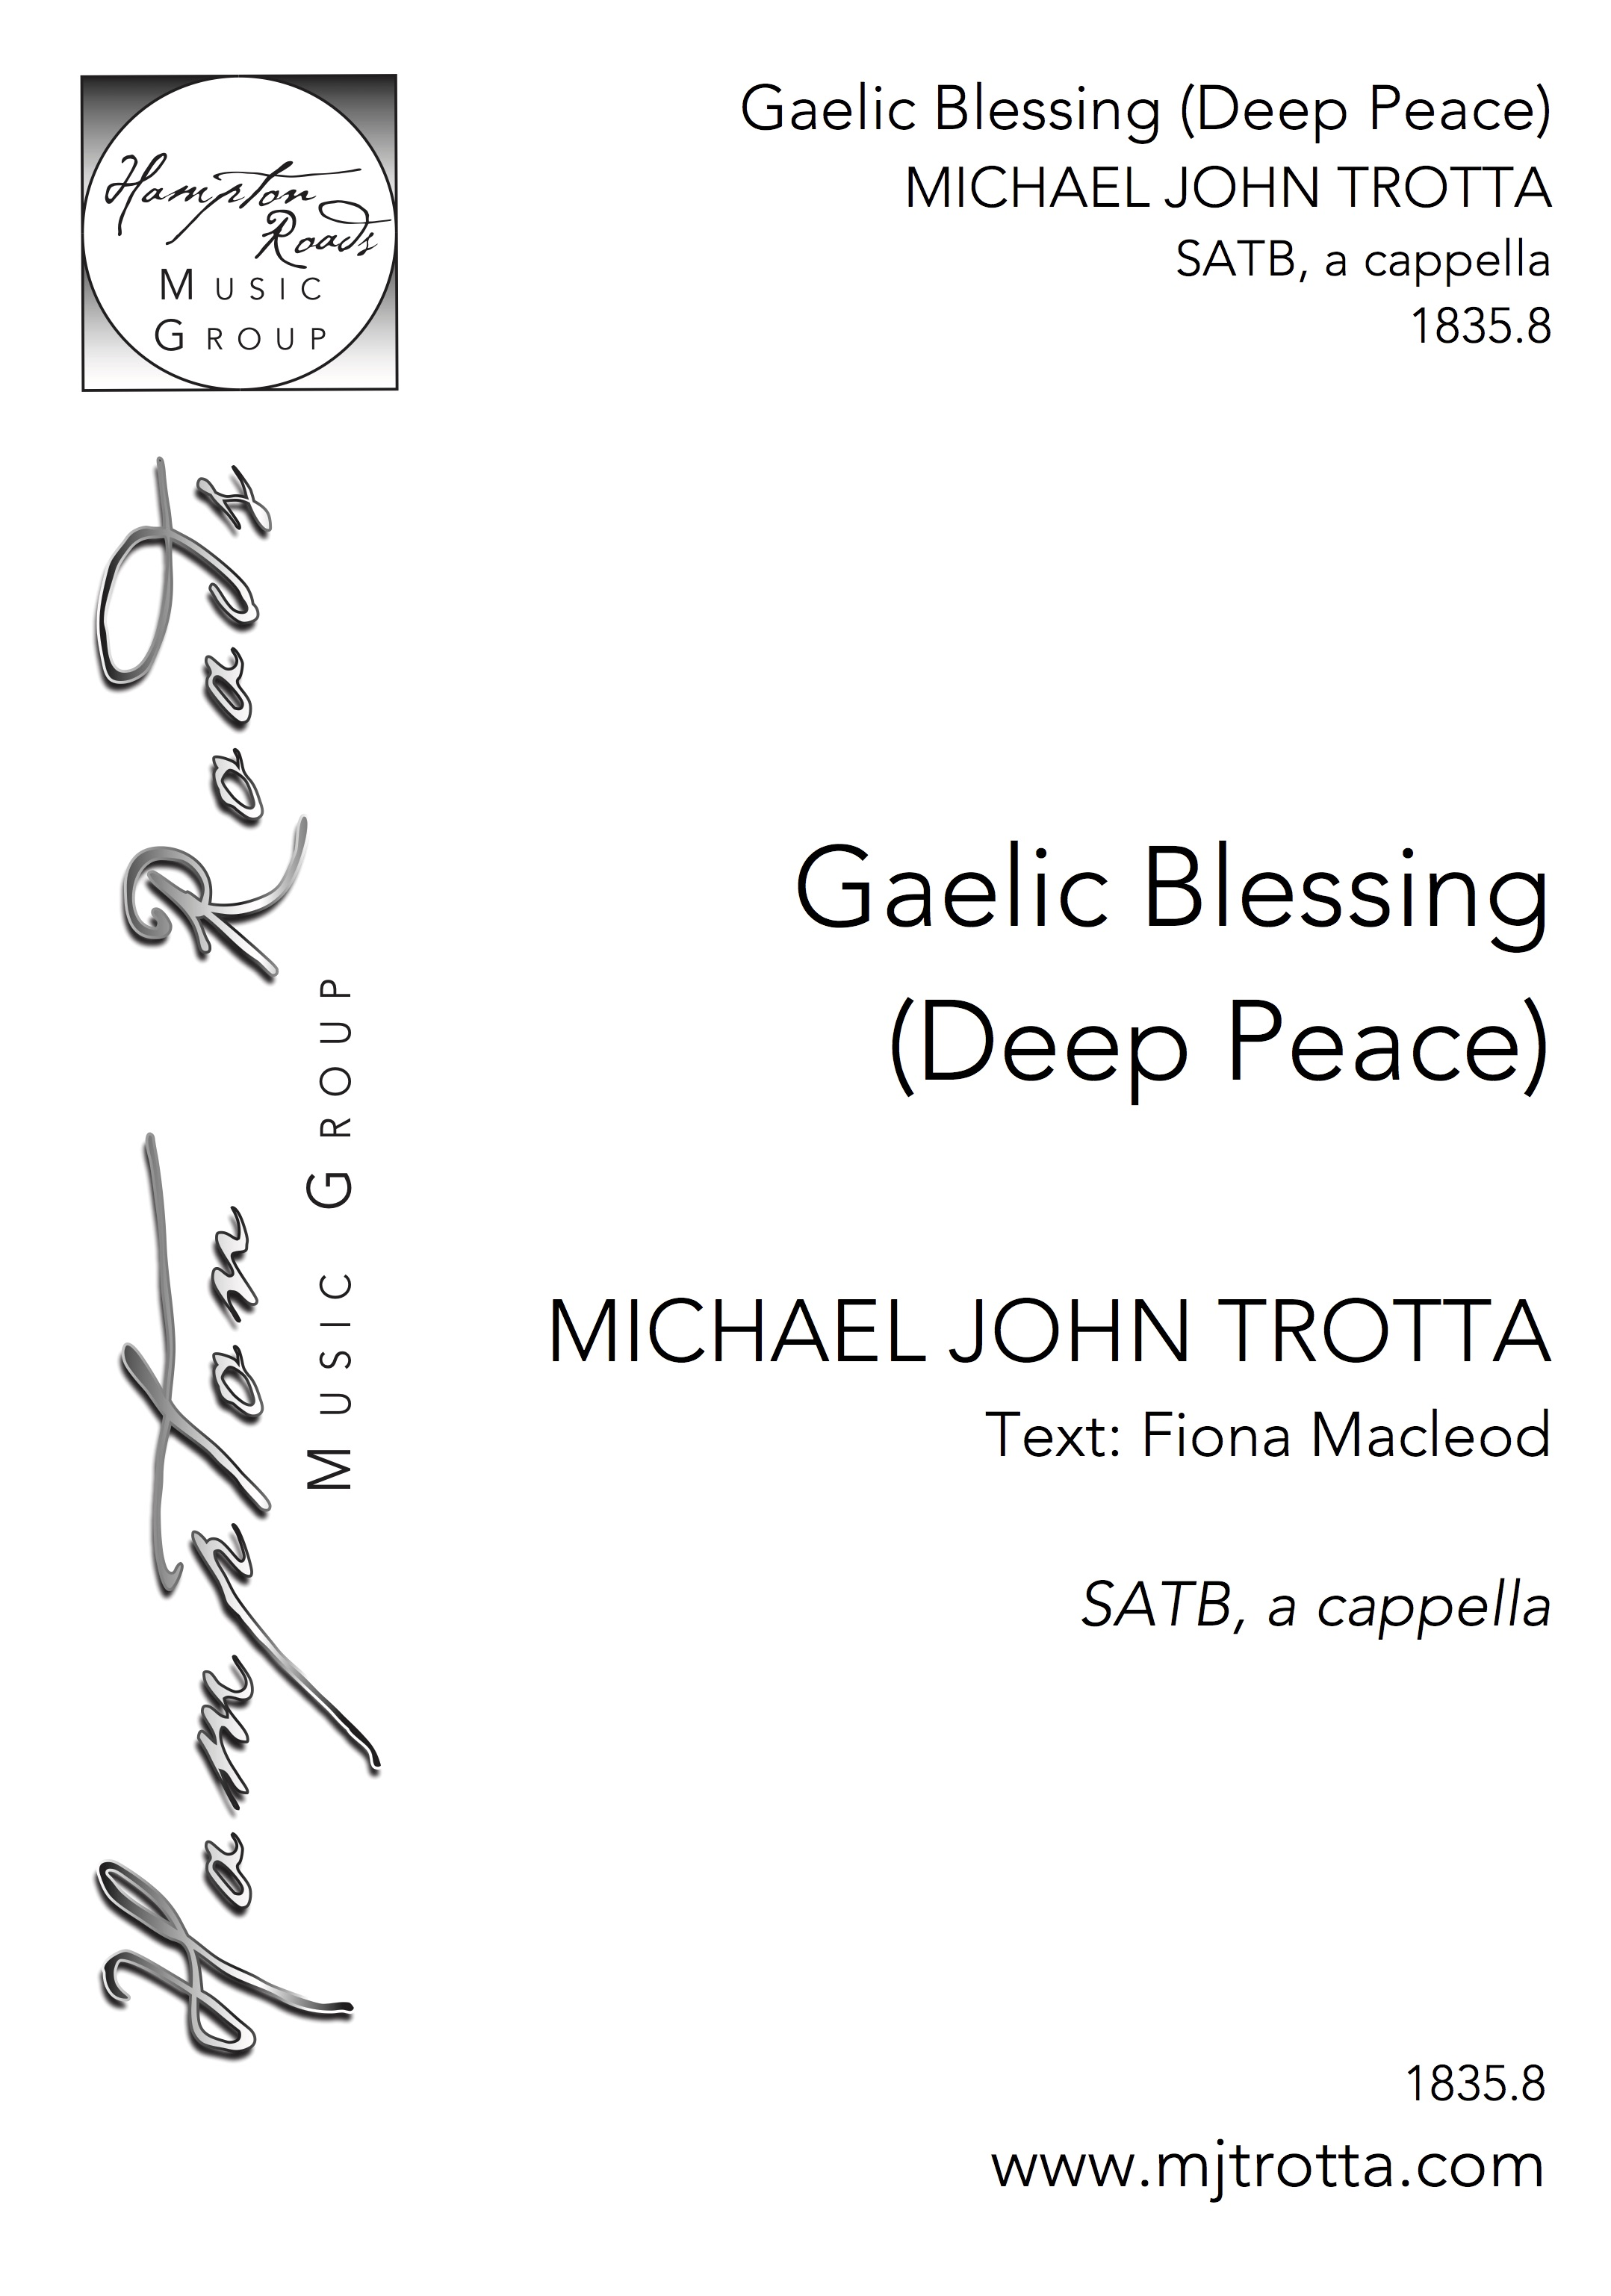 Gaelic Blessing Deep Peace